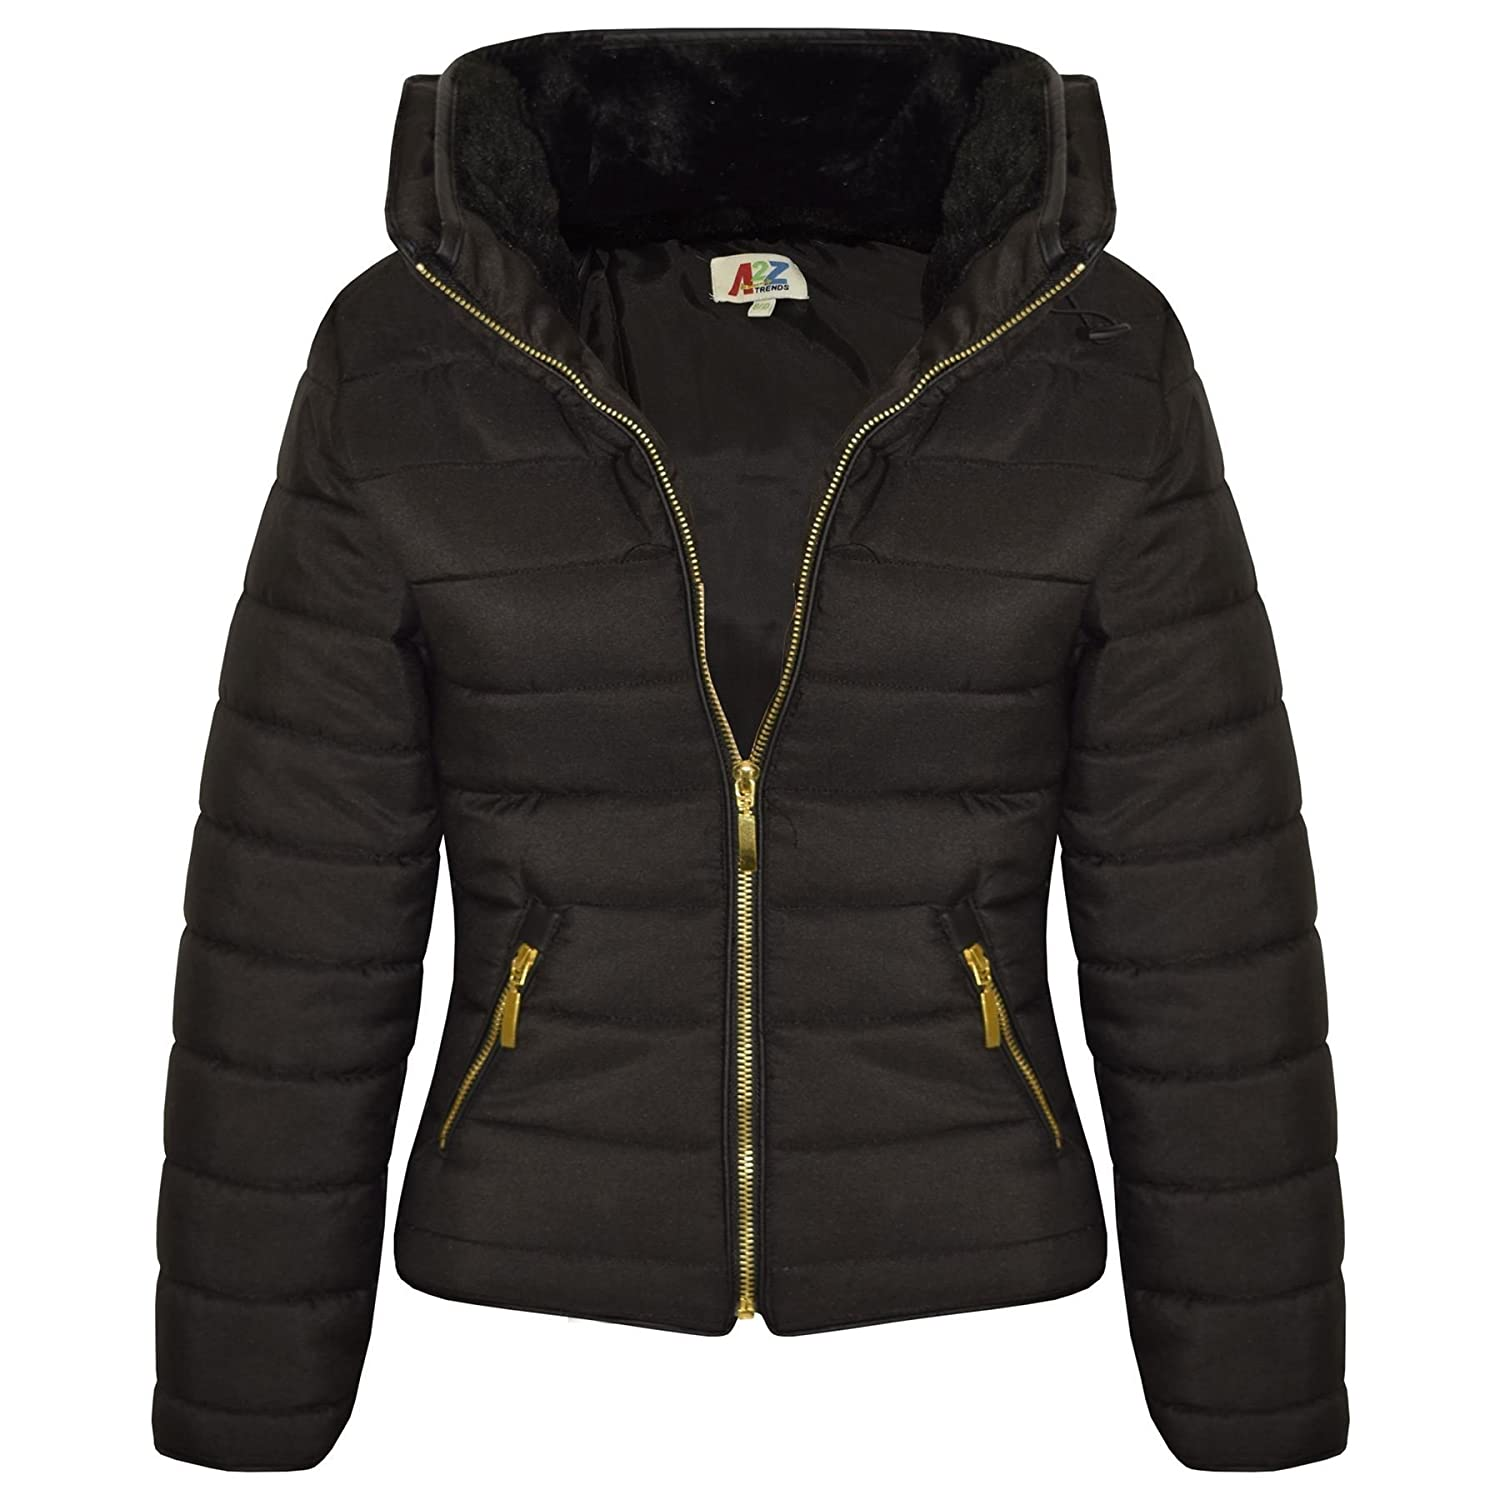 A2Z 4 Kids® Girls Jacket Kids Stylish Padded Puffer Bubble Faux Fur Collar Quilted Warm Thick Coat - Black - 11-12 Yr